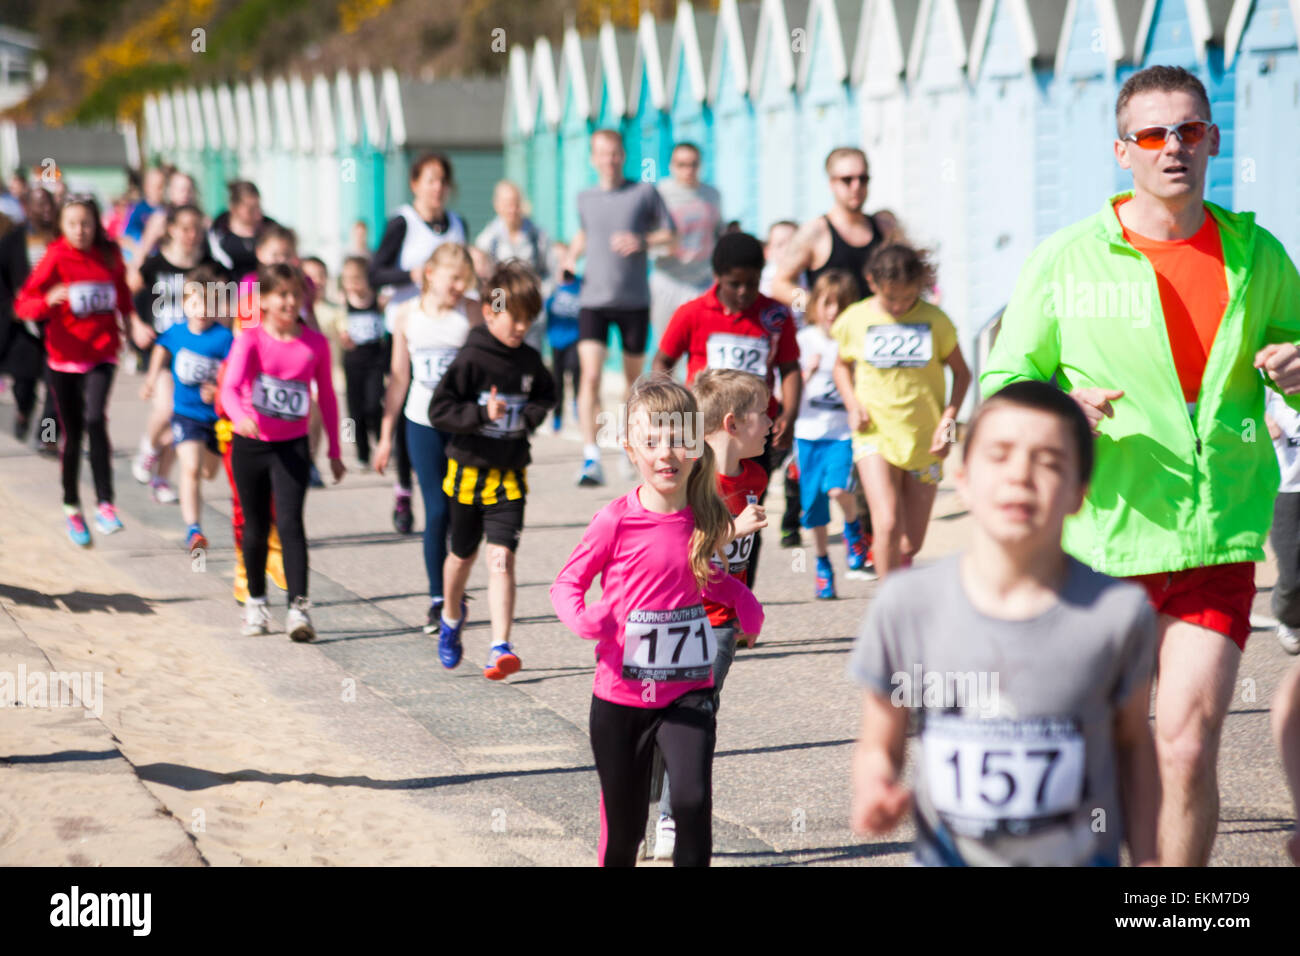 Bournemouth, UK. 12th April, 2015. Children and parents taking part in the 1k children fun run/family friendly run, - Stock Image